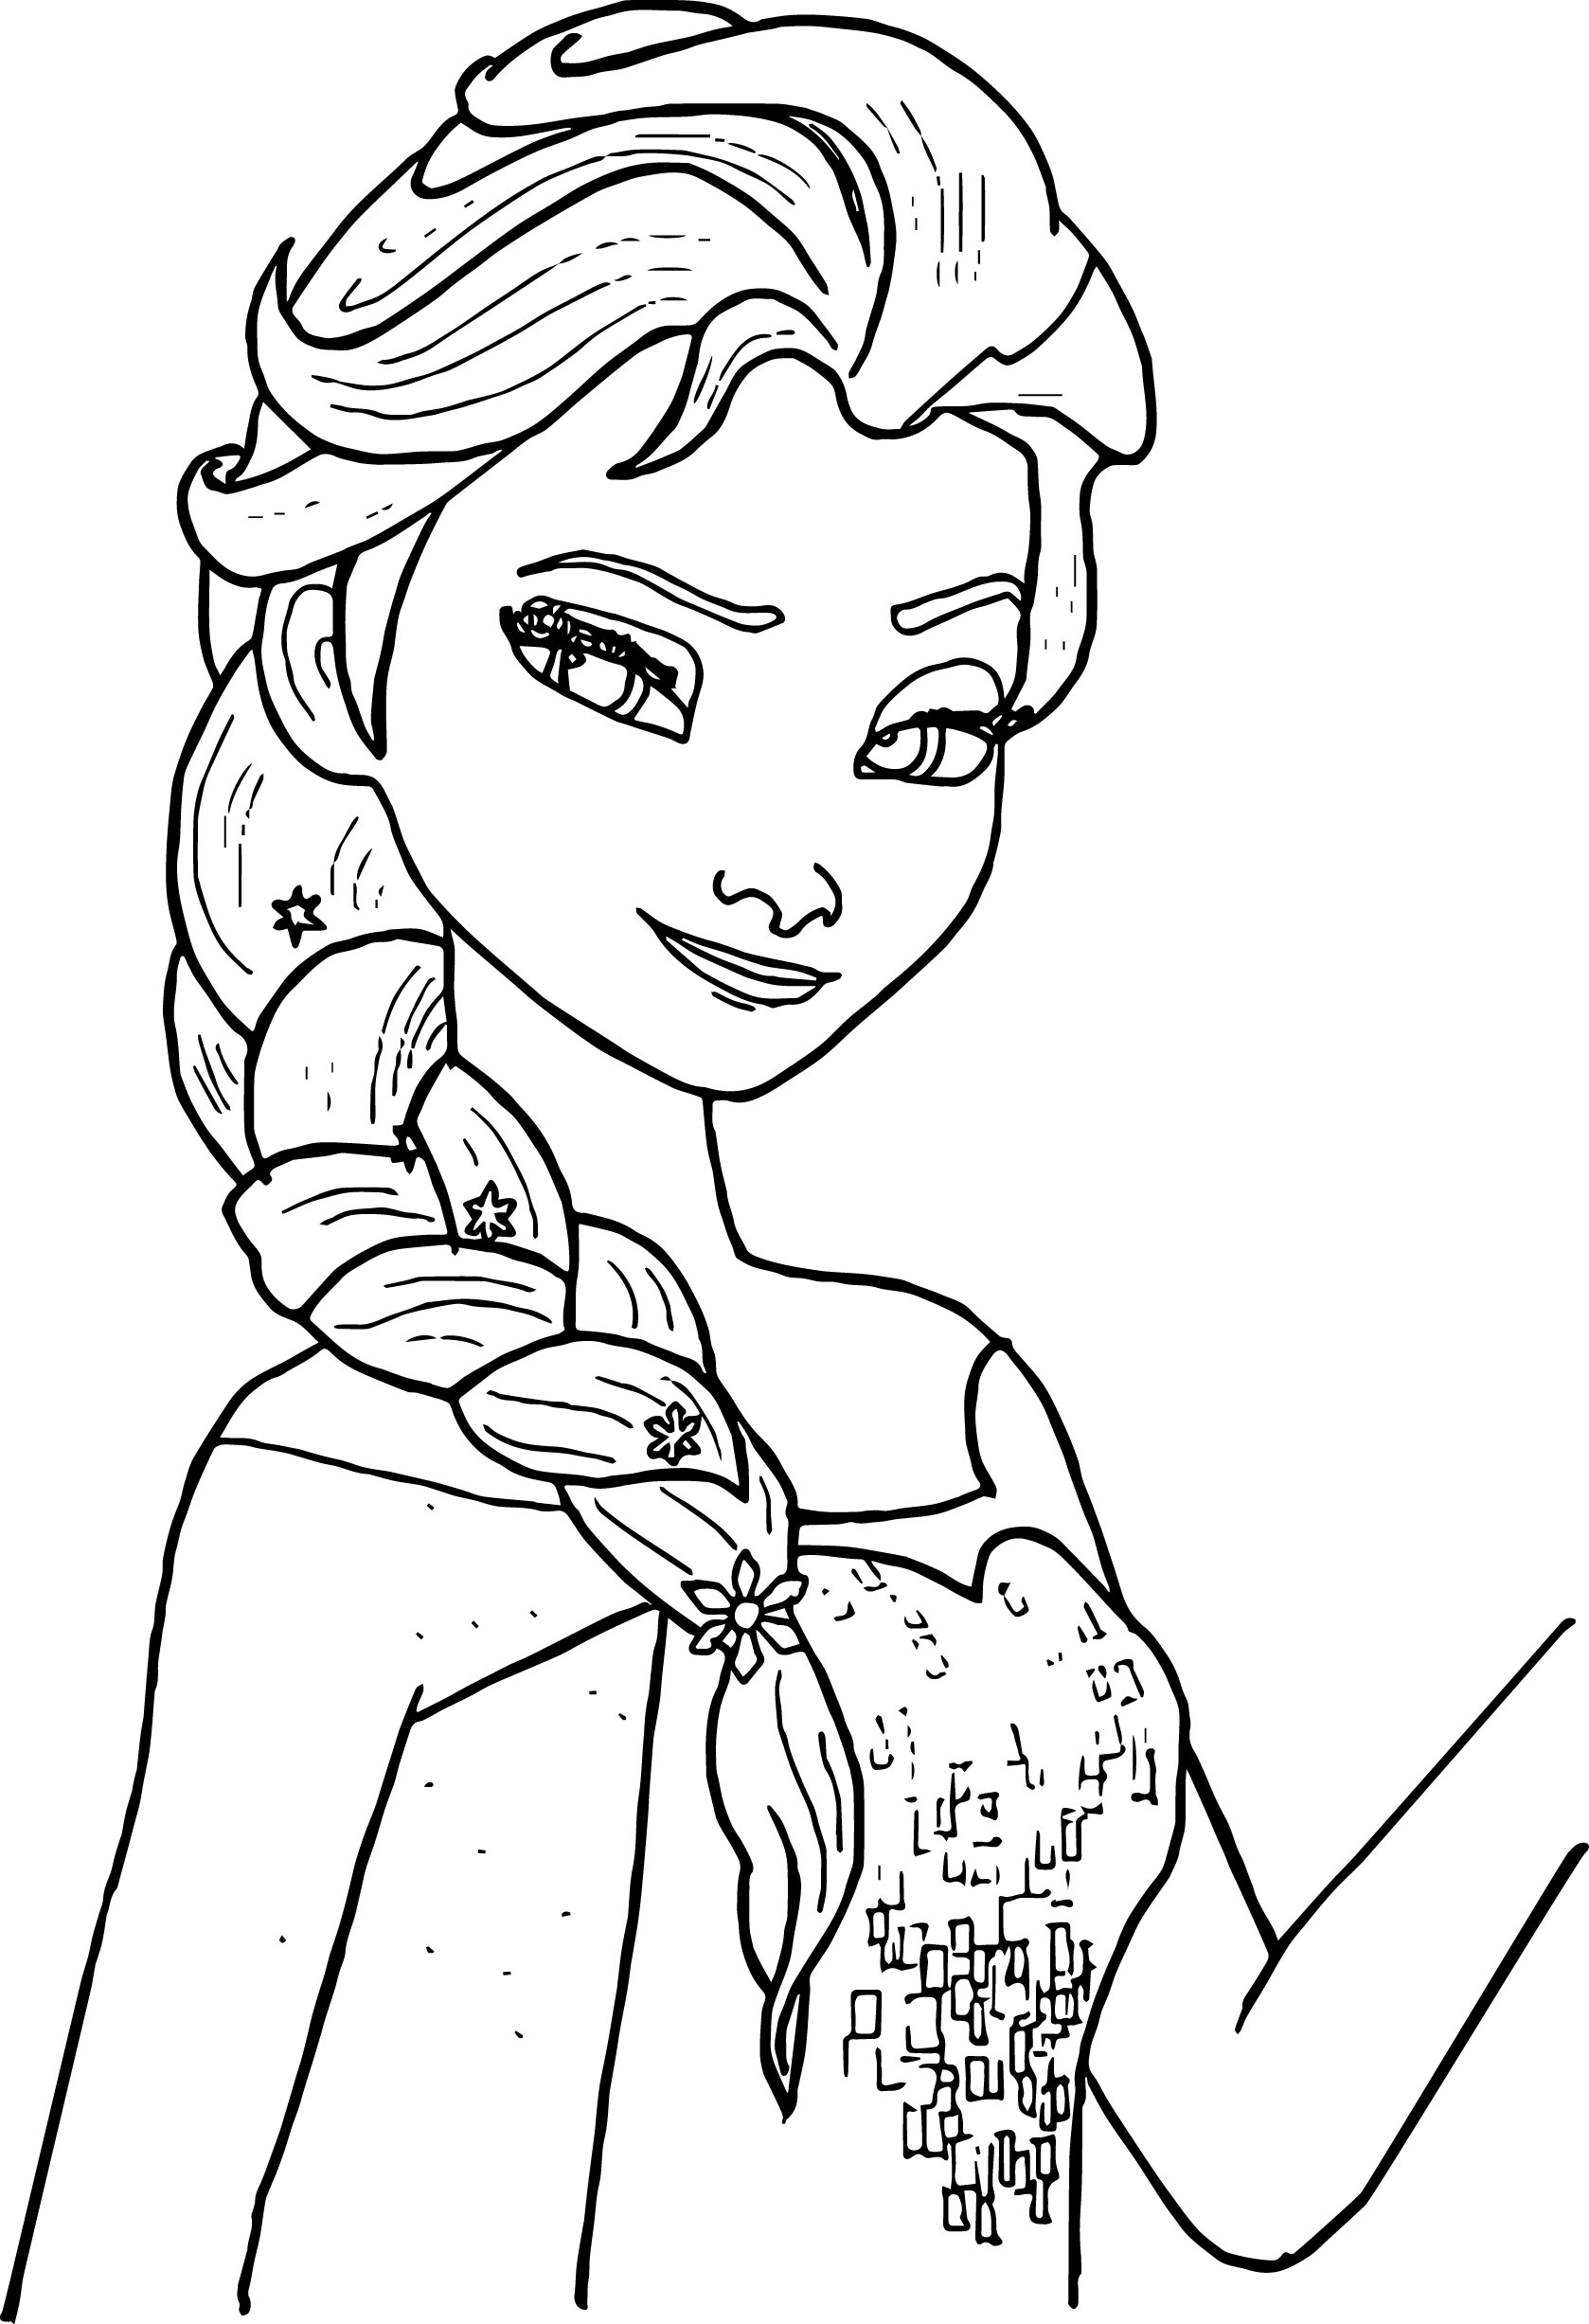 elsa pictures to color free printable elsa coloring pages for kids best color pictures to elsa